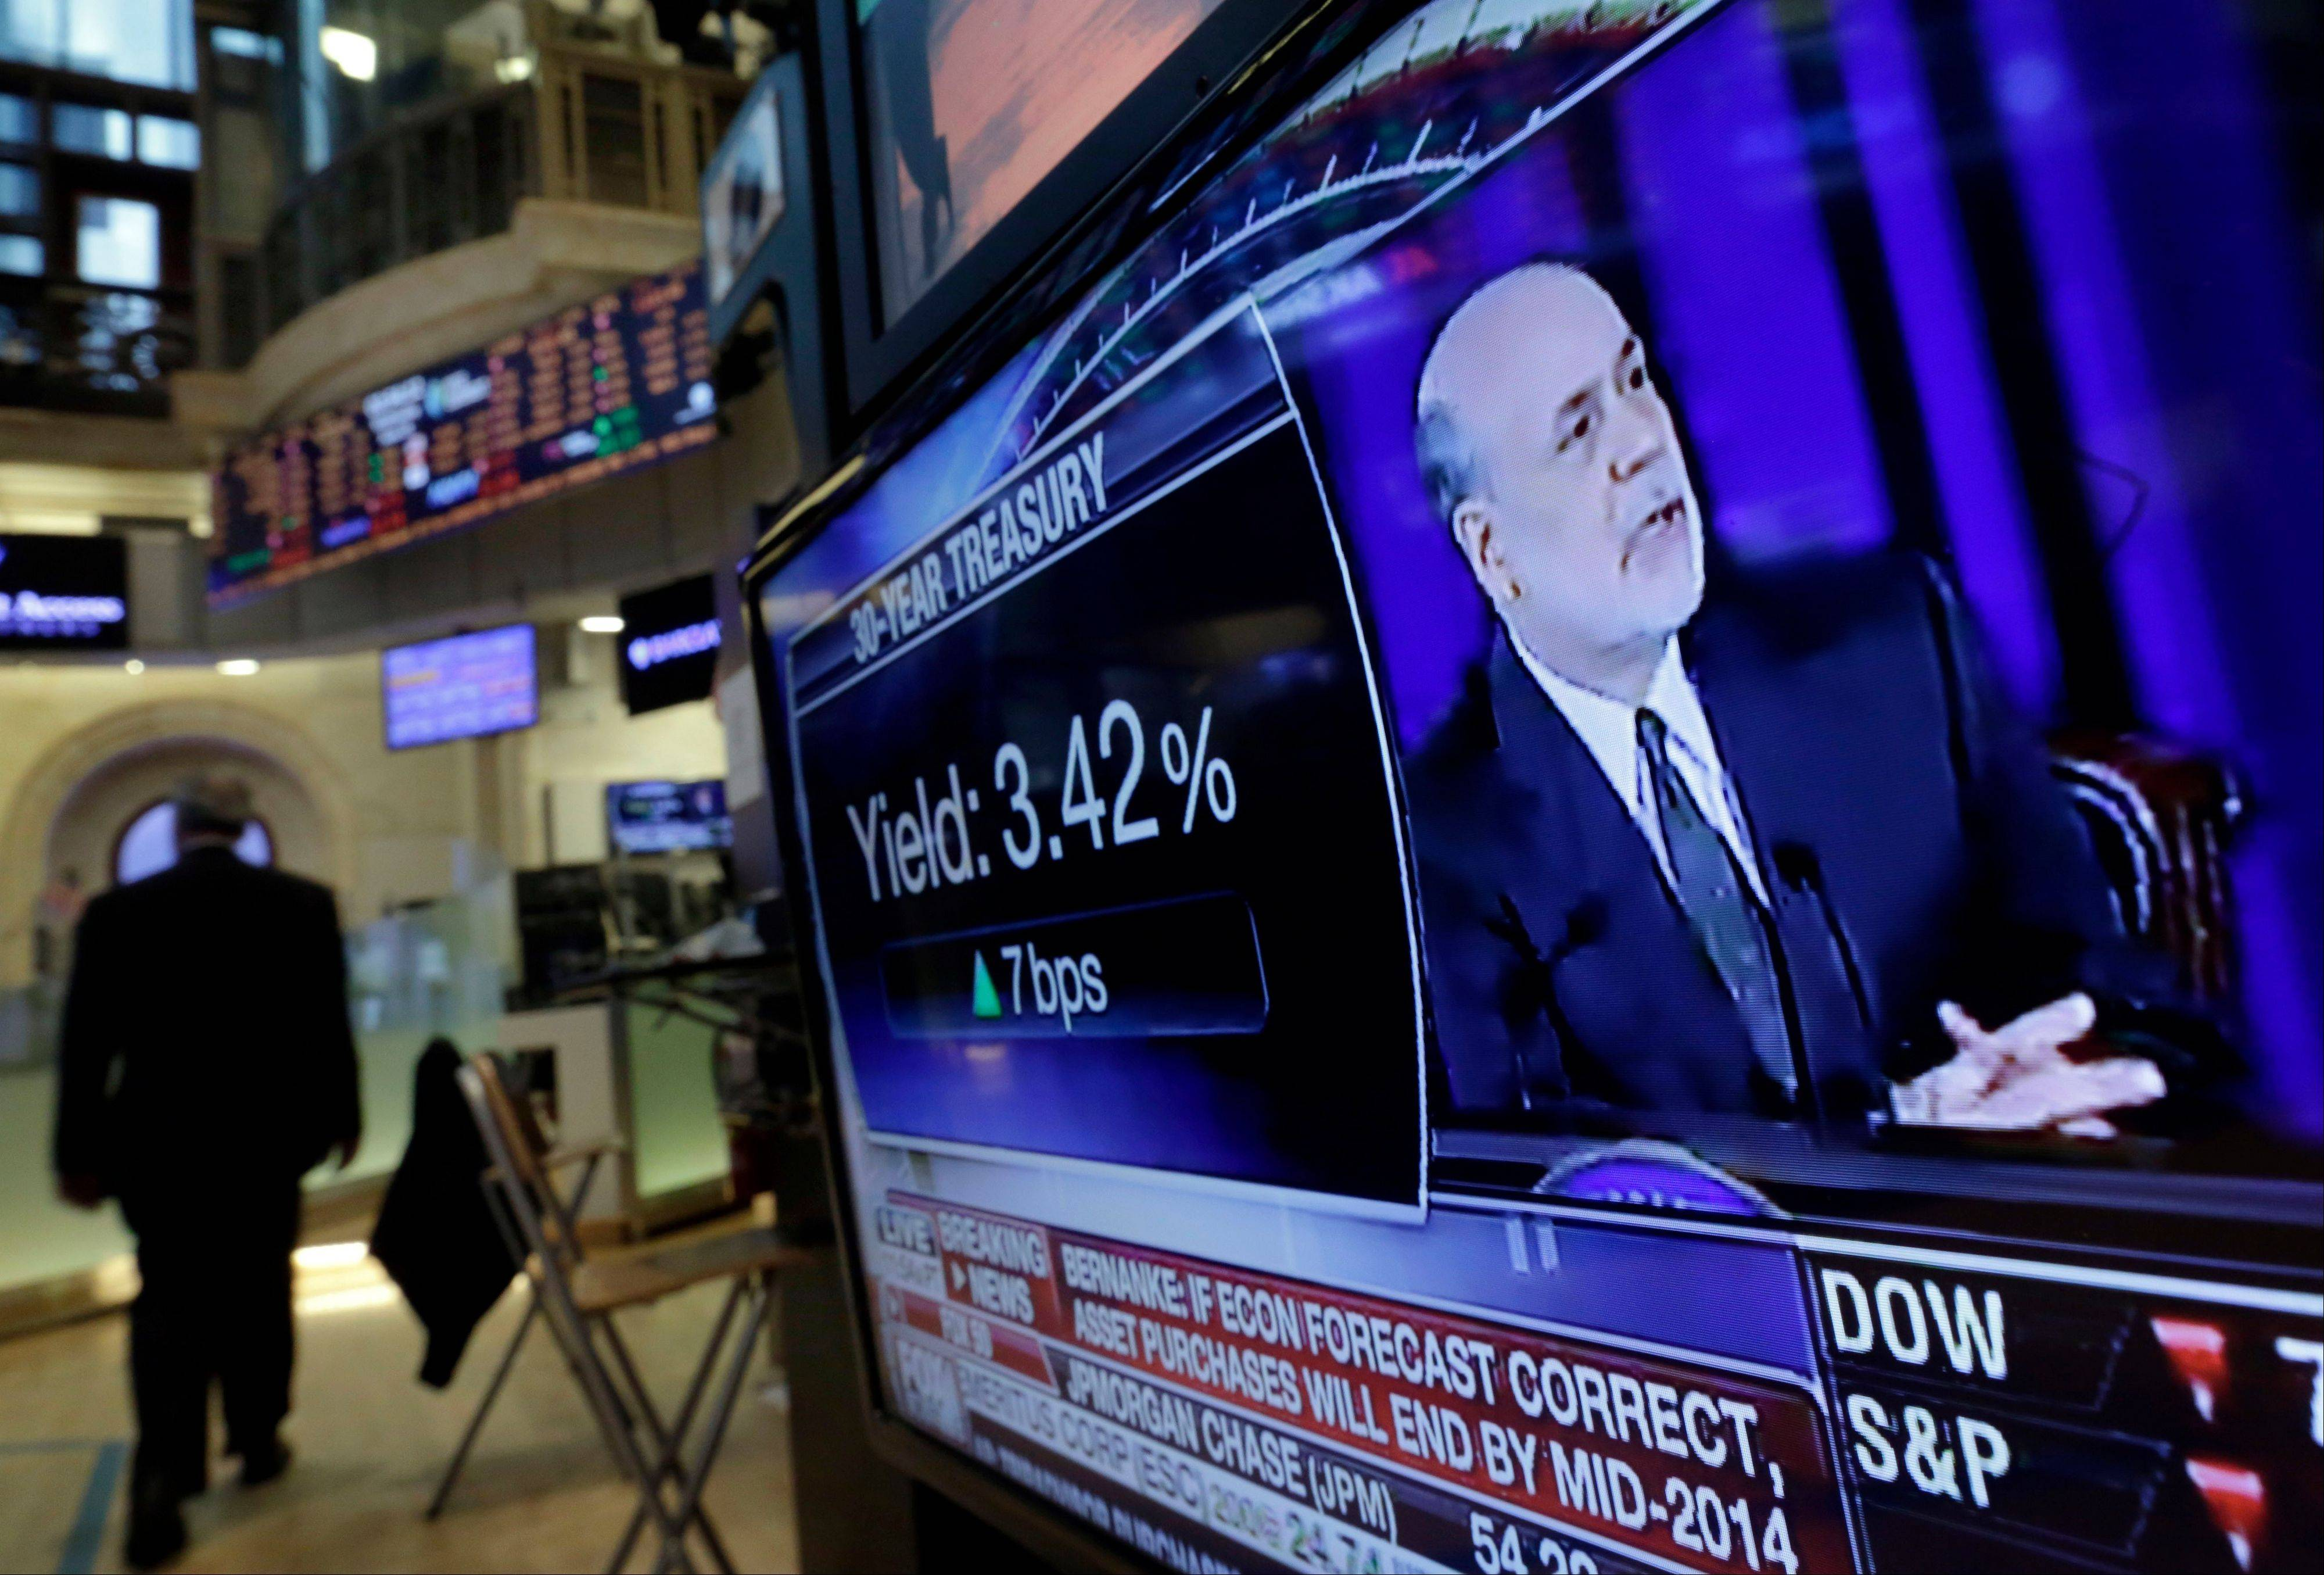 Fed Chairman Ben Bernanke's news conference is on a television screen on the floor of the New York Stock Exchange Wednesday, when the Fed hinted it's moving closer to slowing its bond-buying program, which is intended to keep long-term interest rates at record lows.